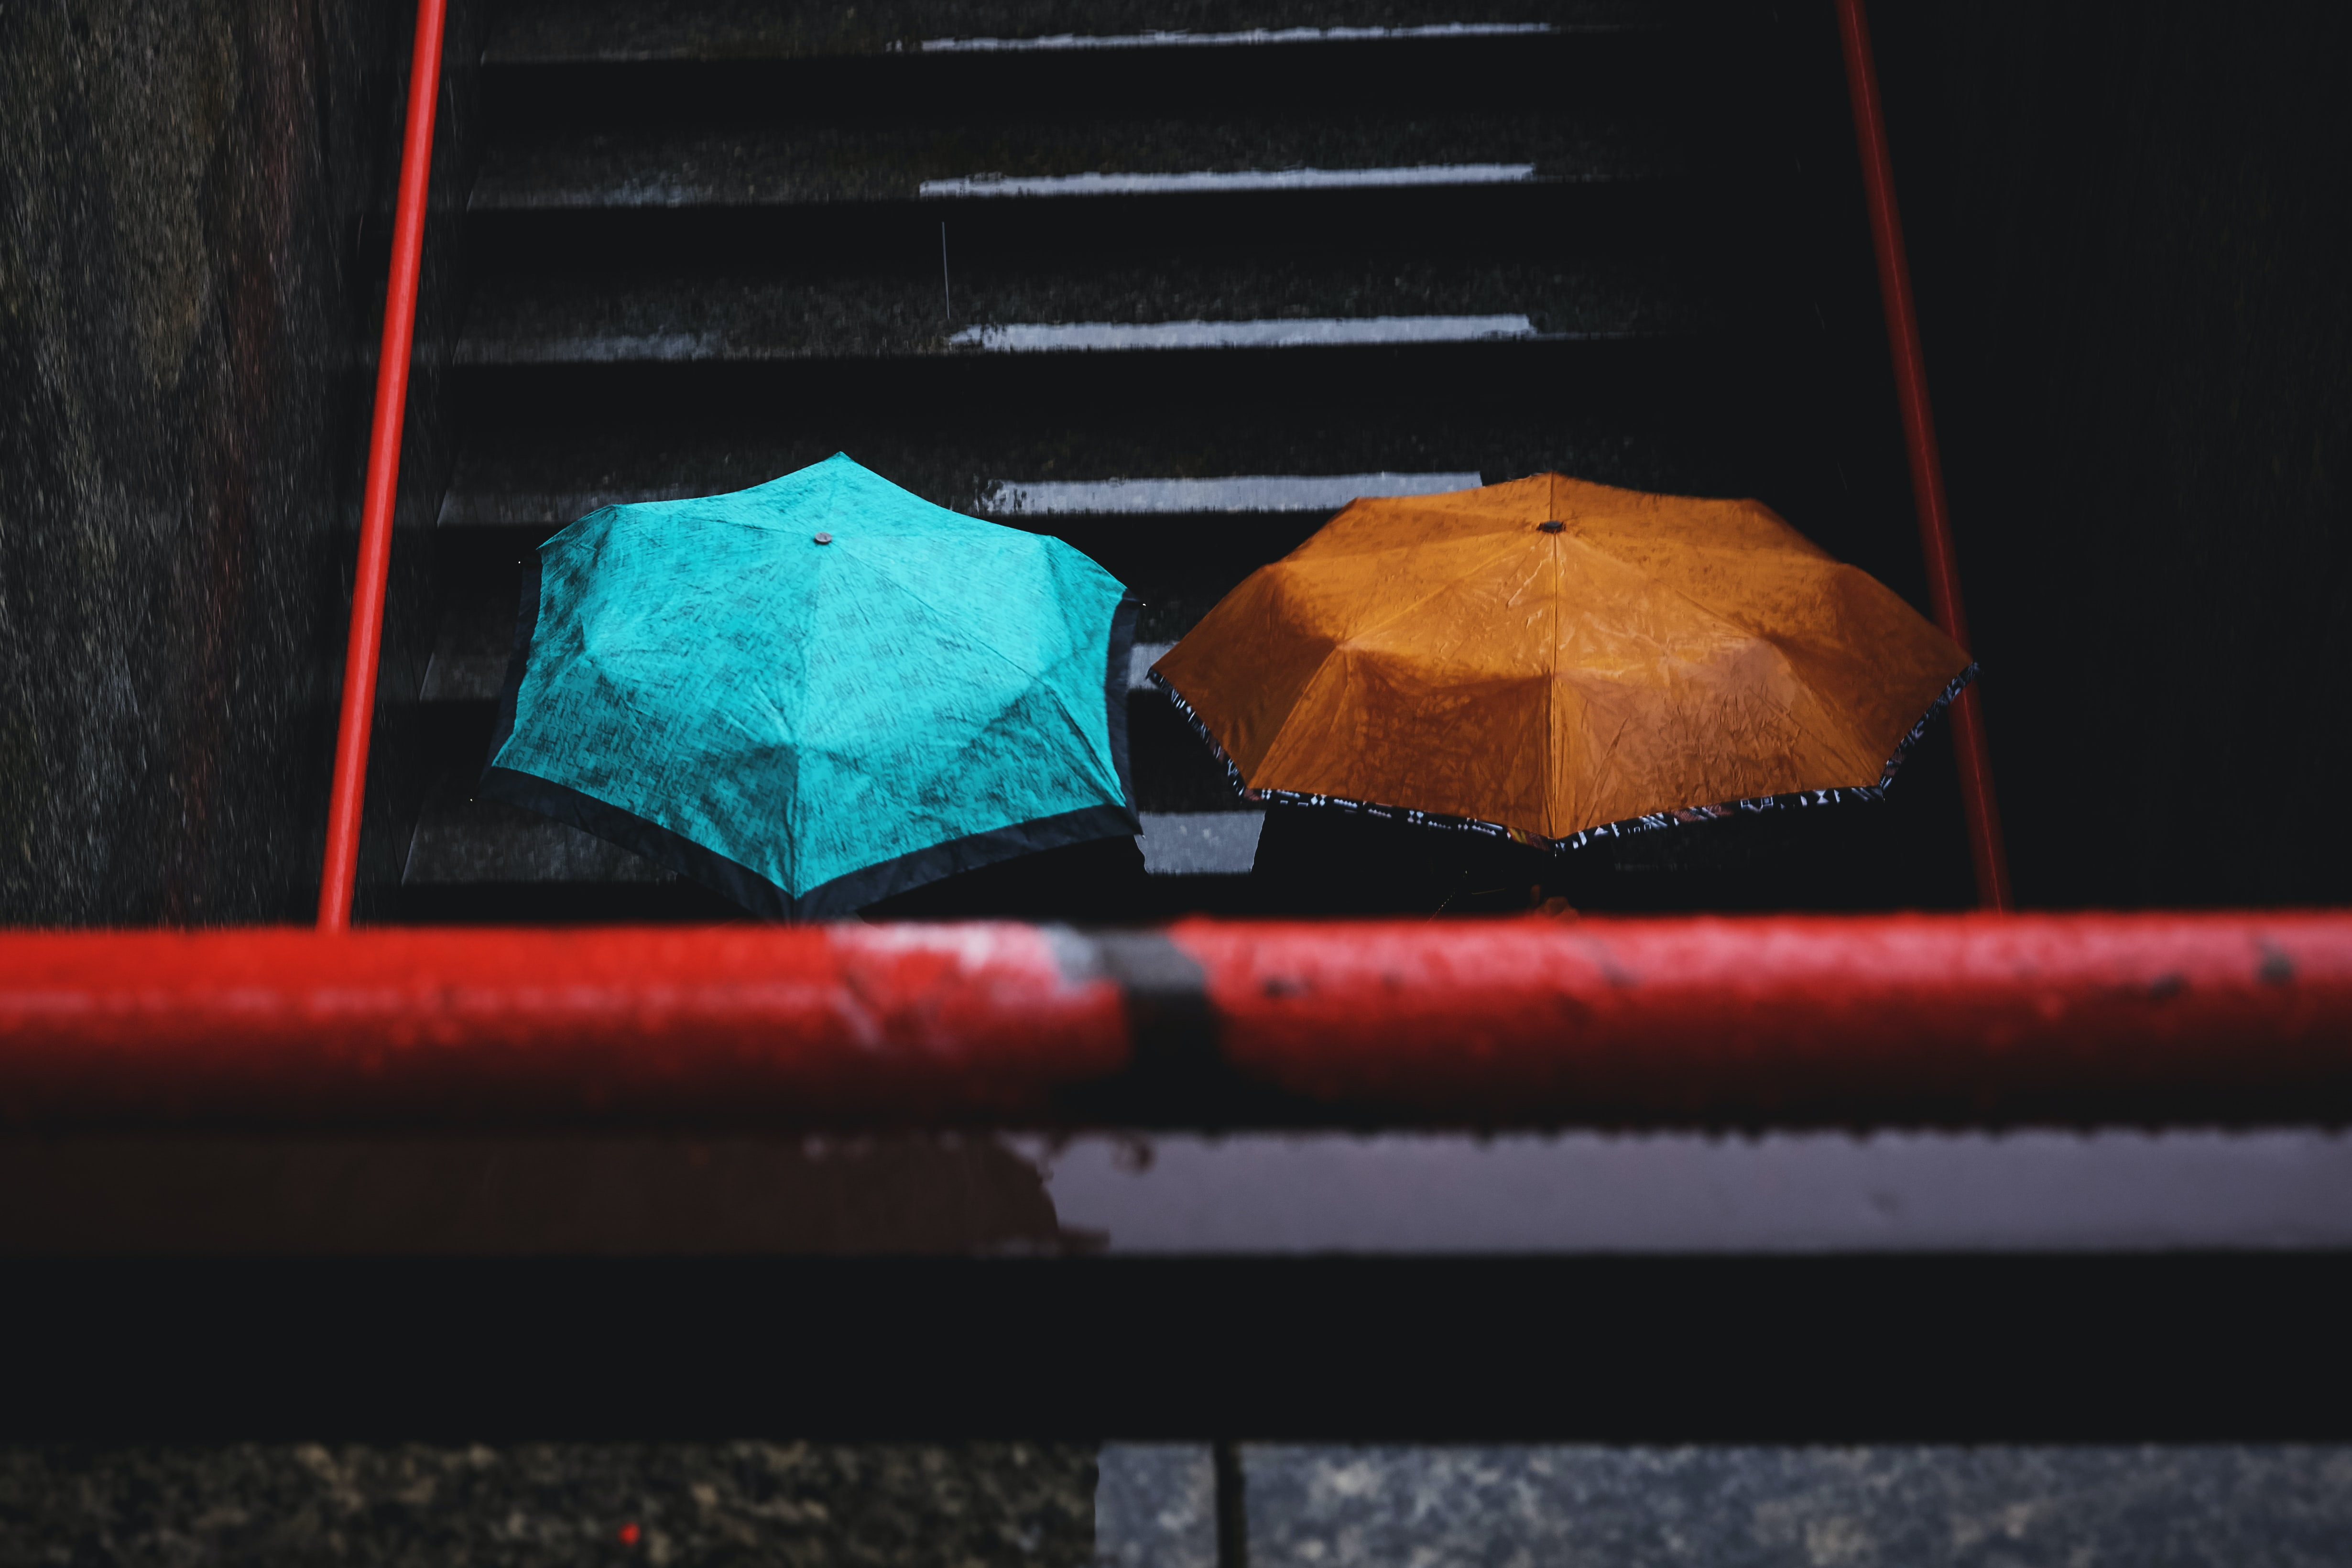 Two people carrying umbrellas on a wet staircase